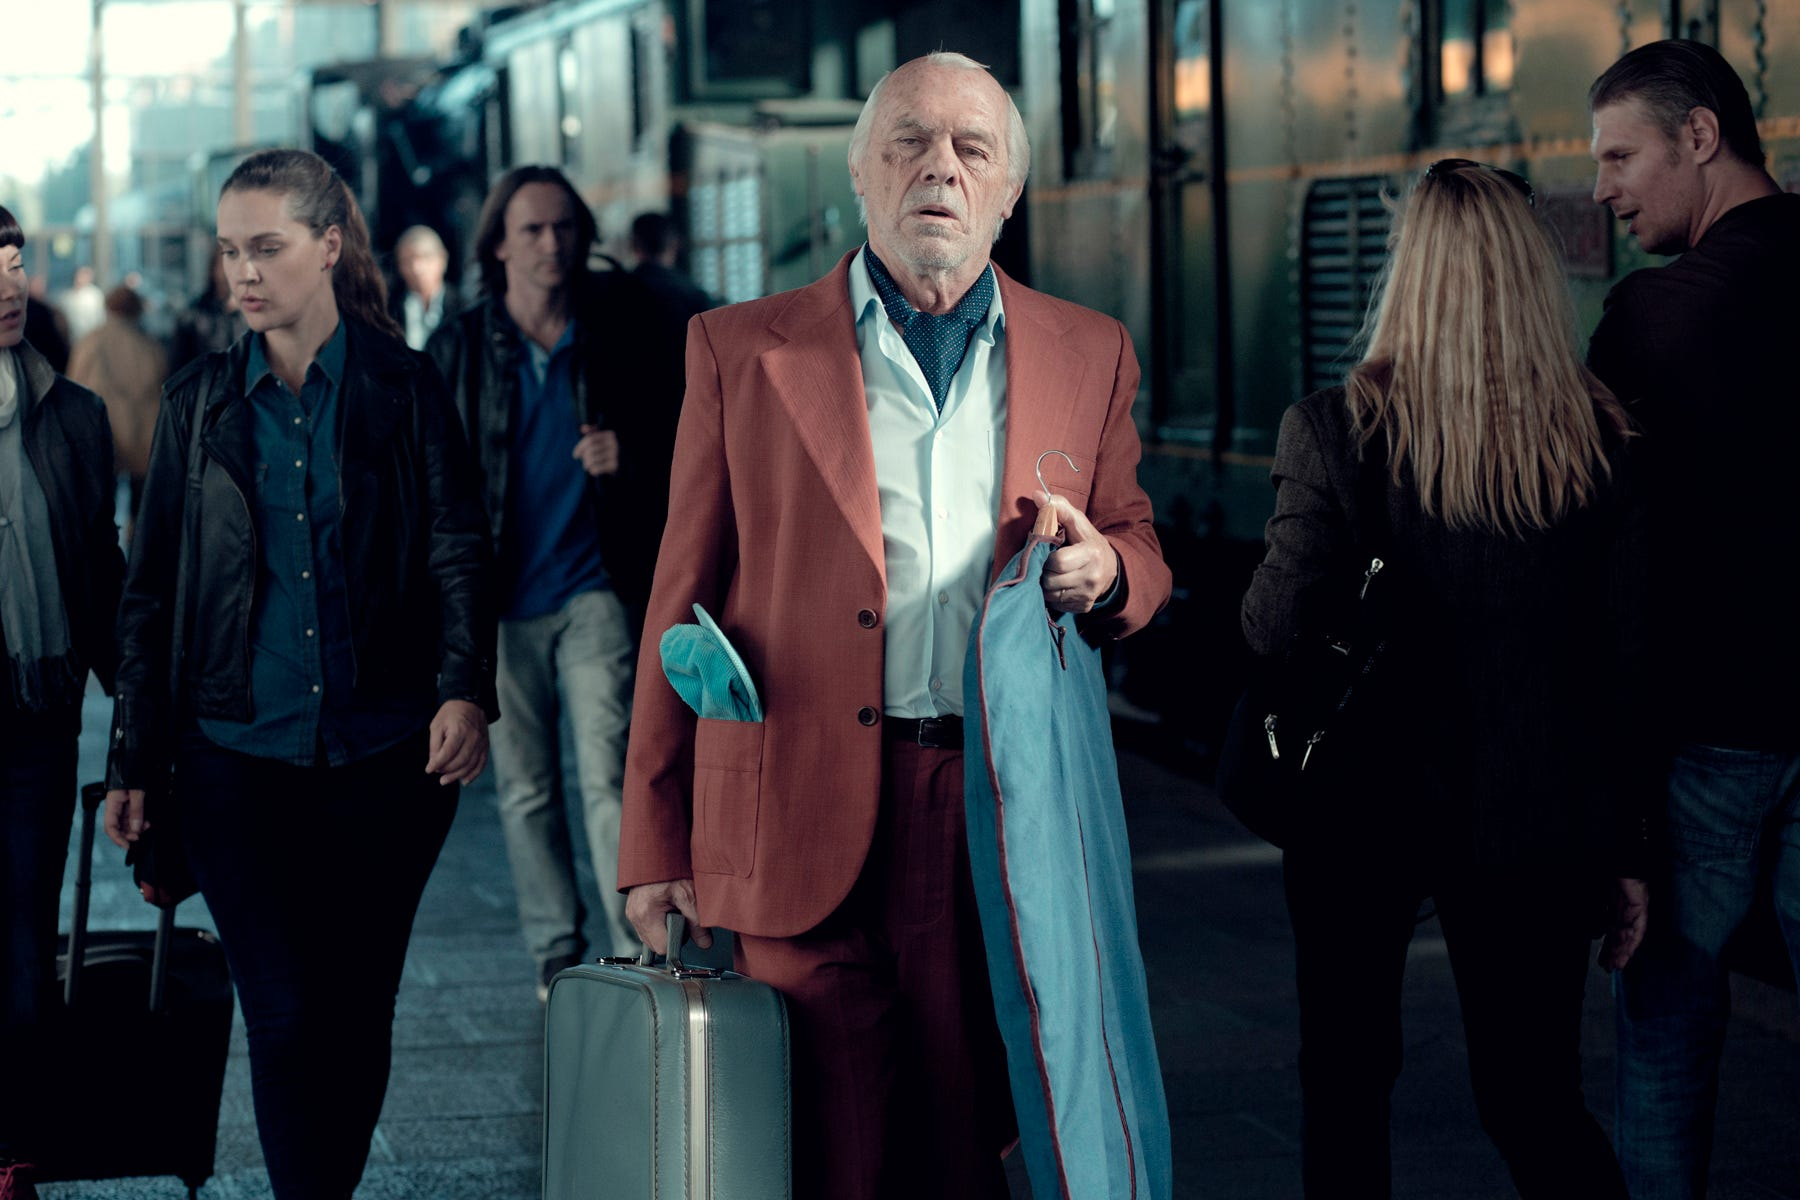 """Miguel Ángel Solá plays a Holocaust survivor determined to keep a 70-year-old promise in """"The Last Suit."""""""